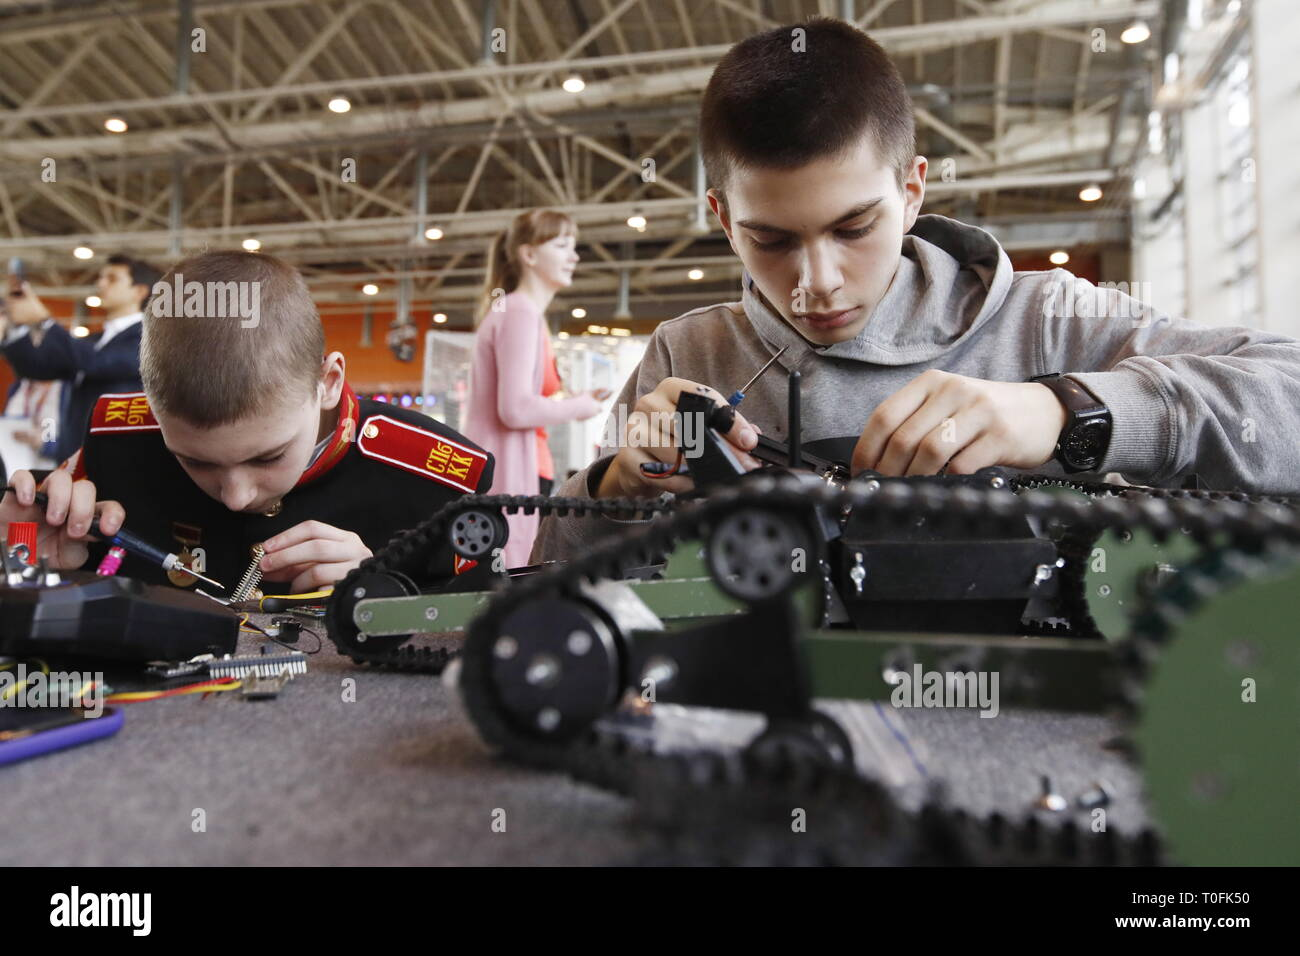 EDITORIAL USE ONLY; NO COMMERCIAL USE; NO ADVERTISING    MOSCOW, RUSSIA - MARCH 20, 2019: Children attend a robotics class as part of the PROFEST 2019 technology festival for people aged from 6 to 30 at the VDNKh exhibition centre. Artyom Geodakyan/TASS Stock Photo